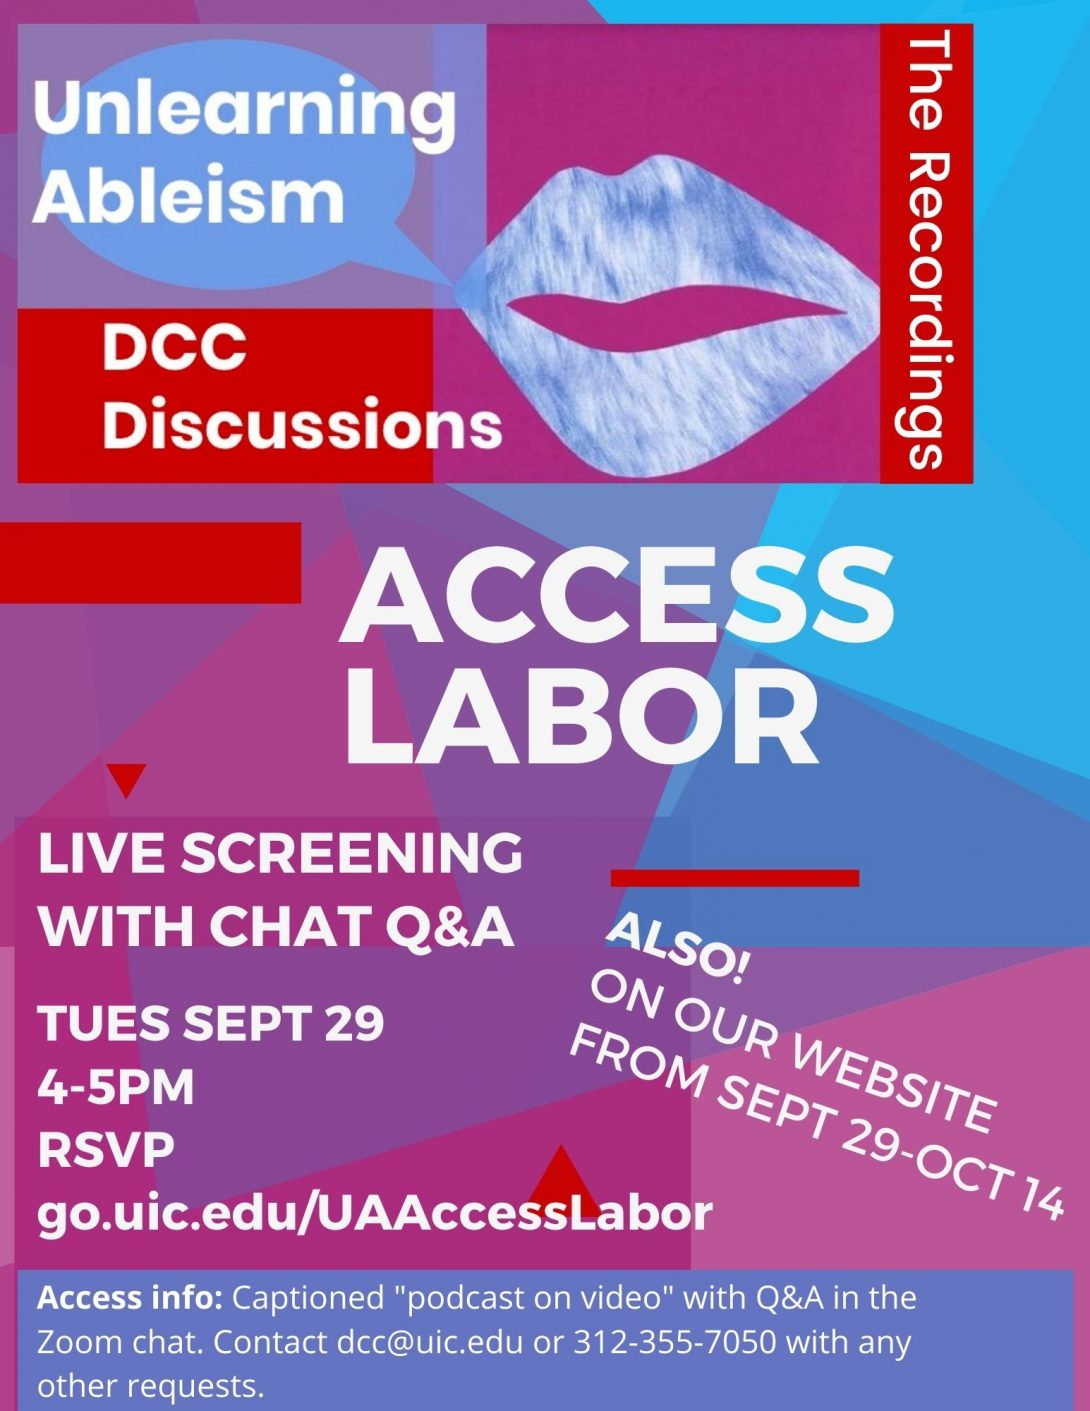 On a purple, blue and pink prismatic background is white lettering, with a large Unlearning Ableism logo at the top. The logo shows a pair of large blue lips with a speech bubble on top of fuschia, red, and blue squares. There are some small red shapes dotting the poster and a blue band at the bottom with the access info.